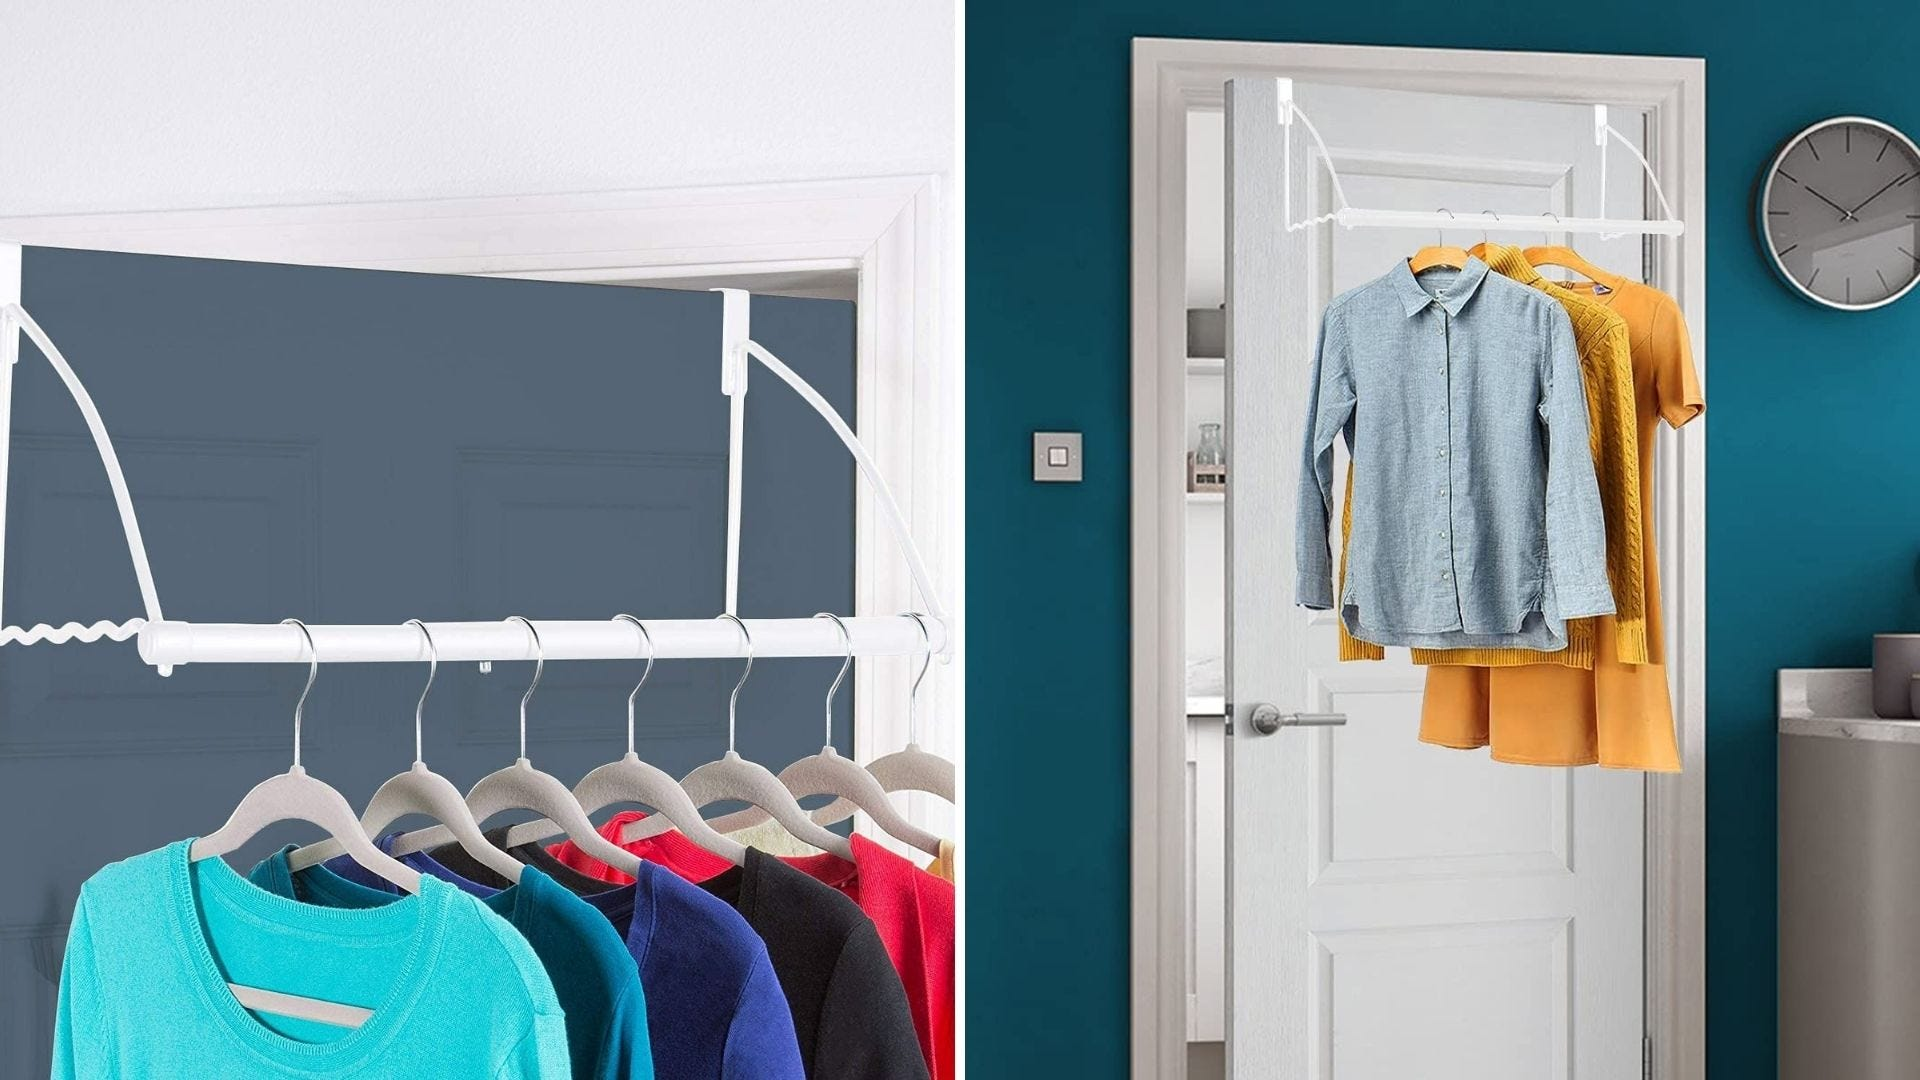 Clothes hang on a rack that hangs on the back of a door